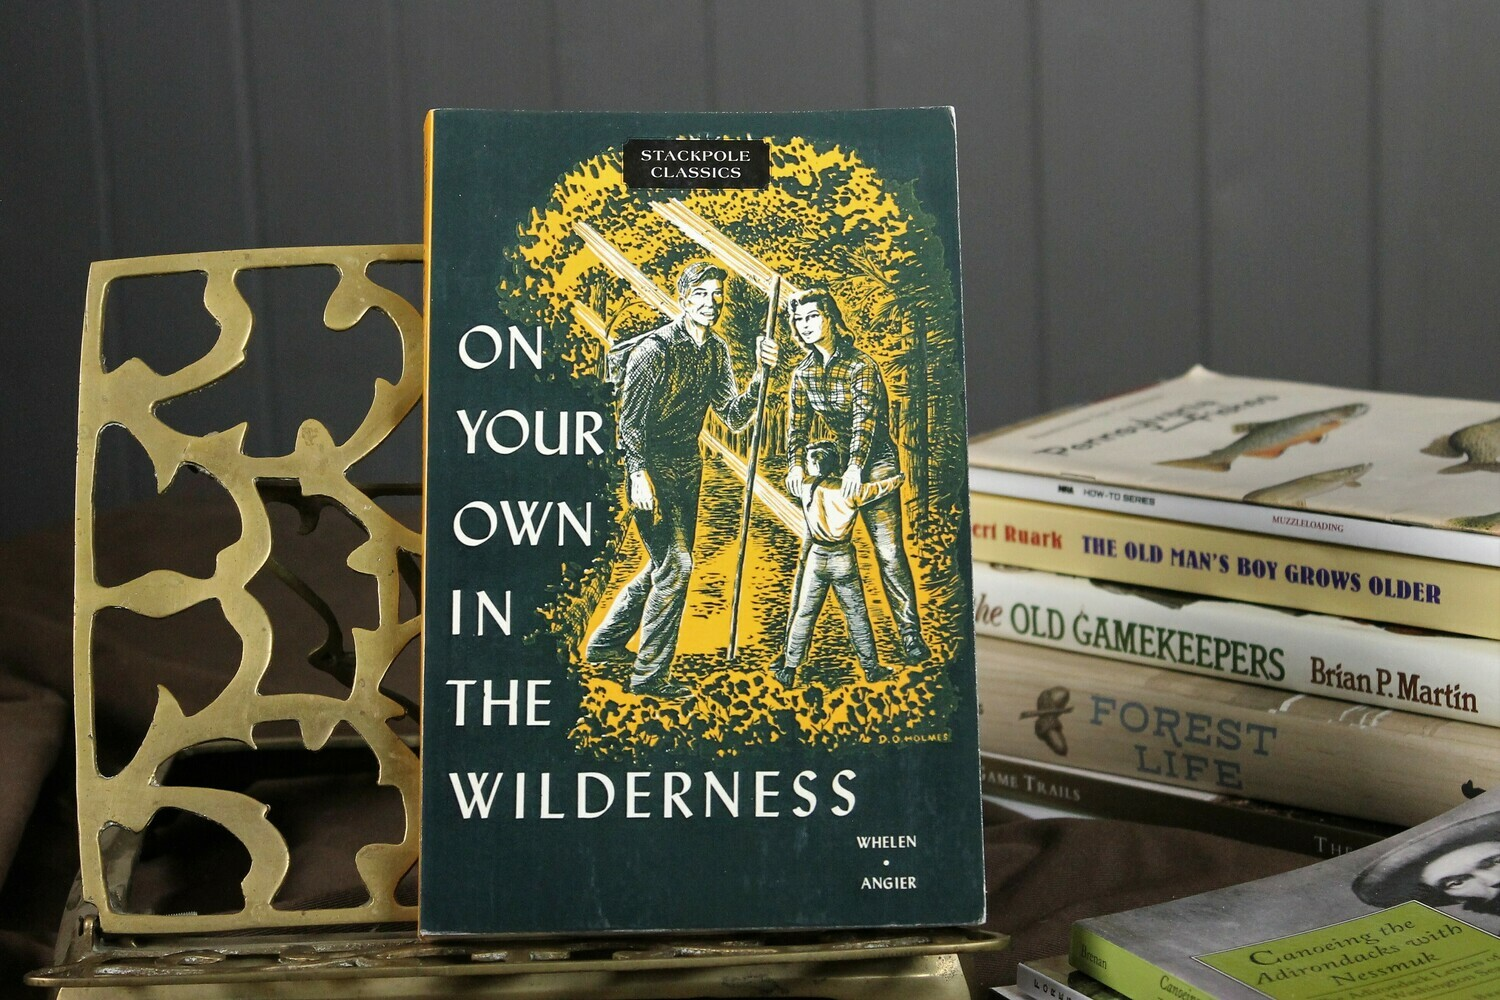 On Your Own in the Wilderness by Wheelen & Angier